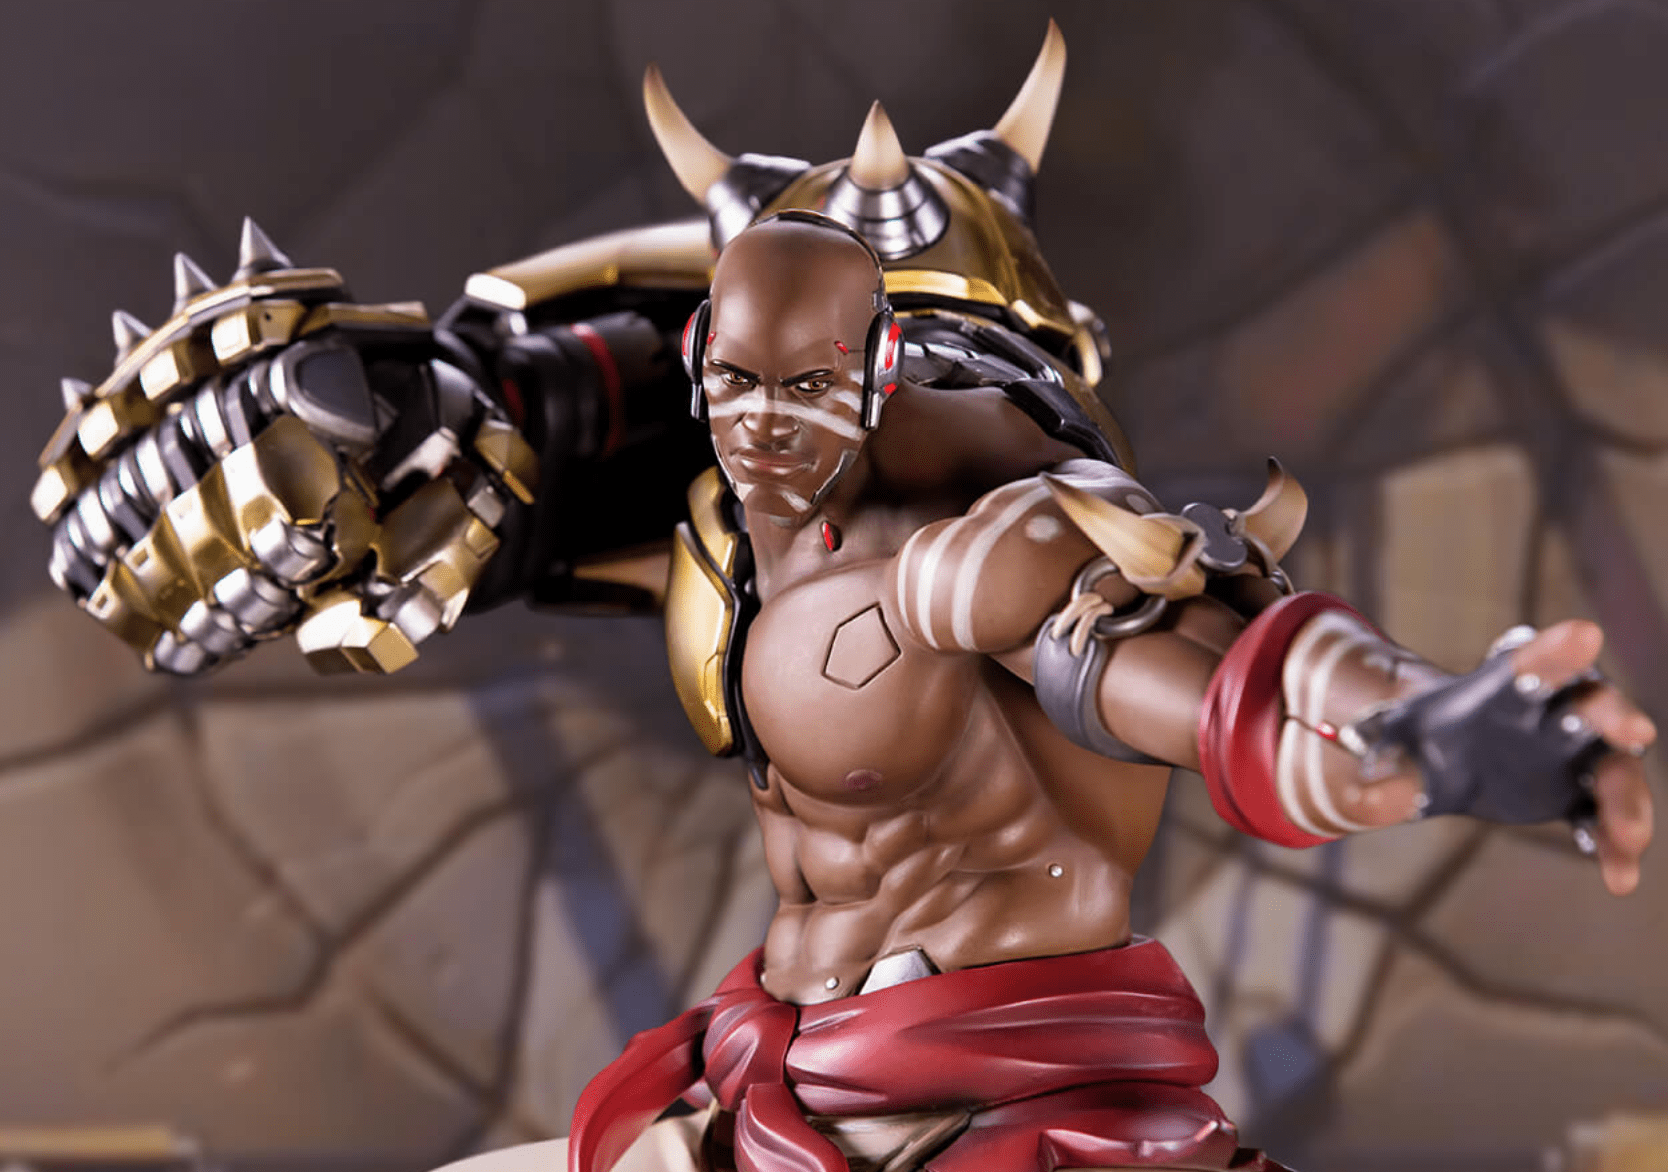 You can pre-order this slick statue today.